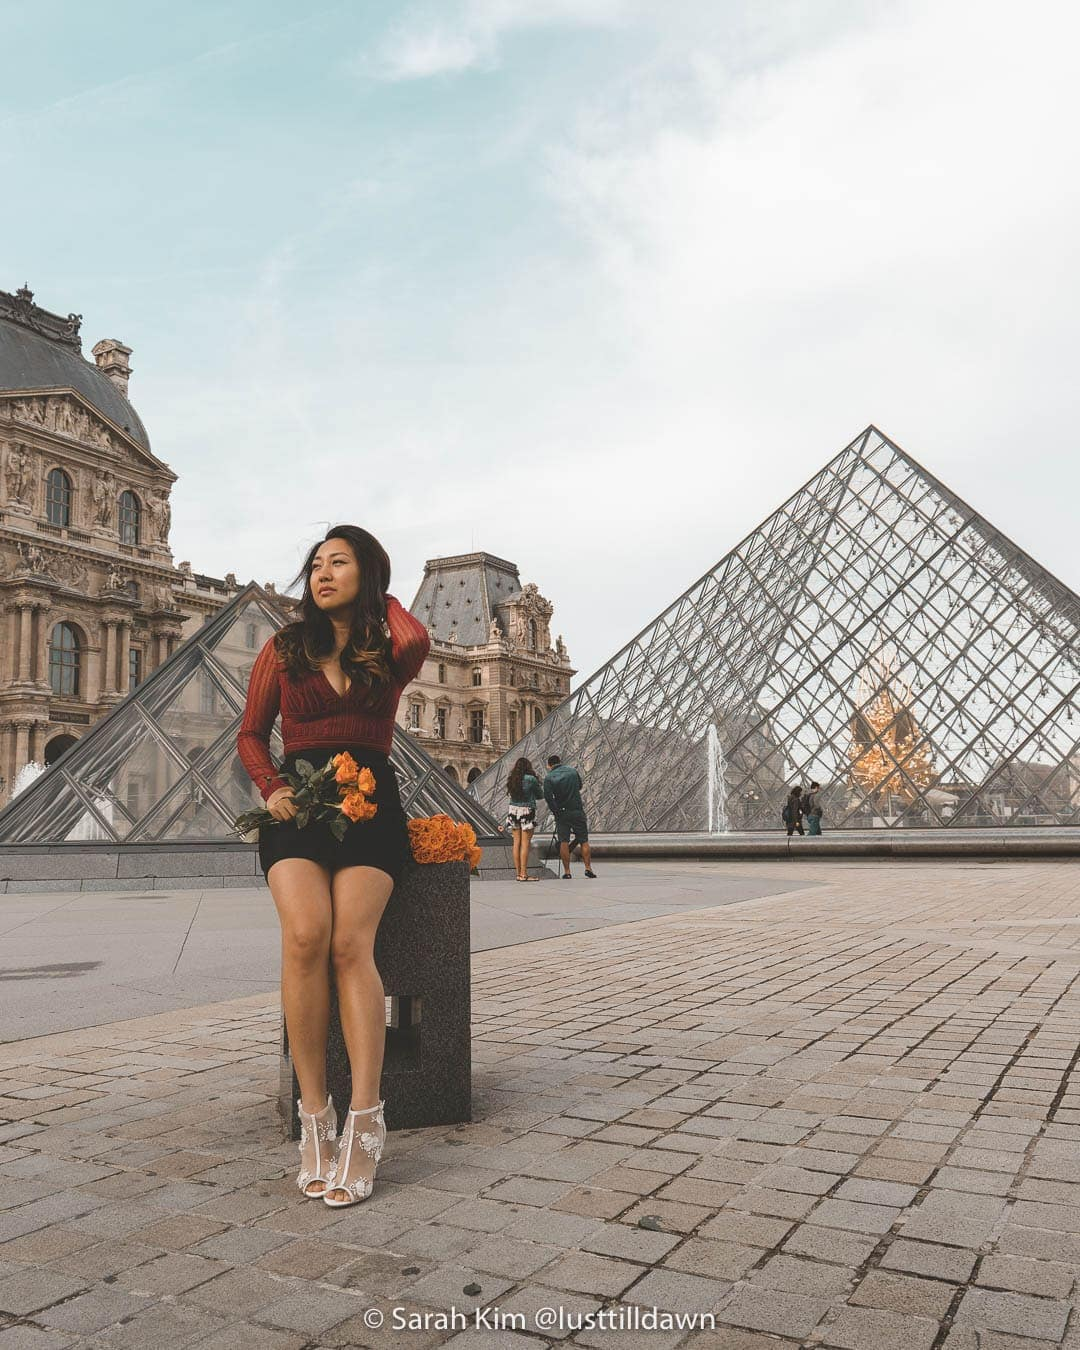 Wide fit bridal shoes worn in front of the Louvre museum in Paris